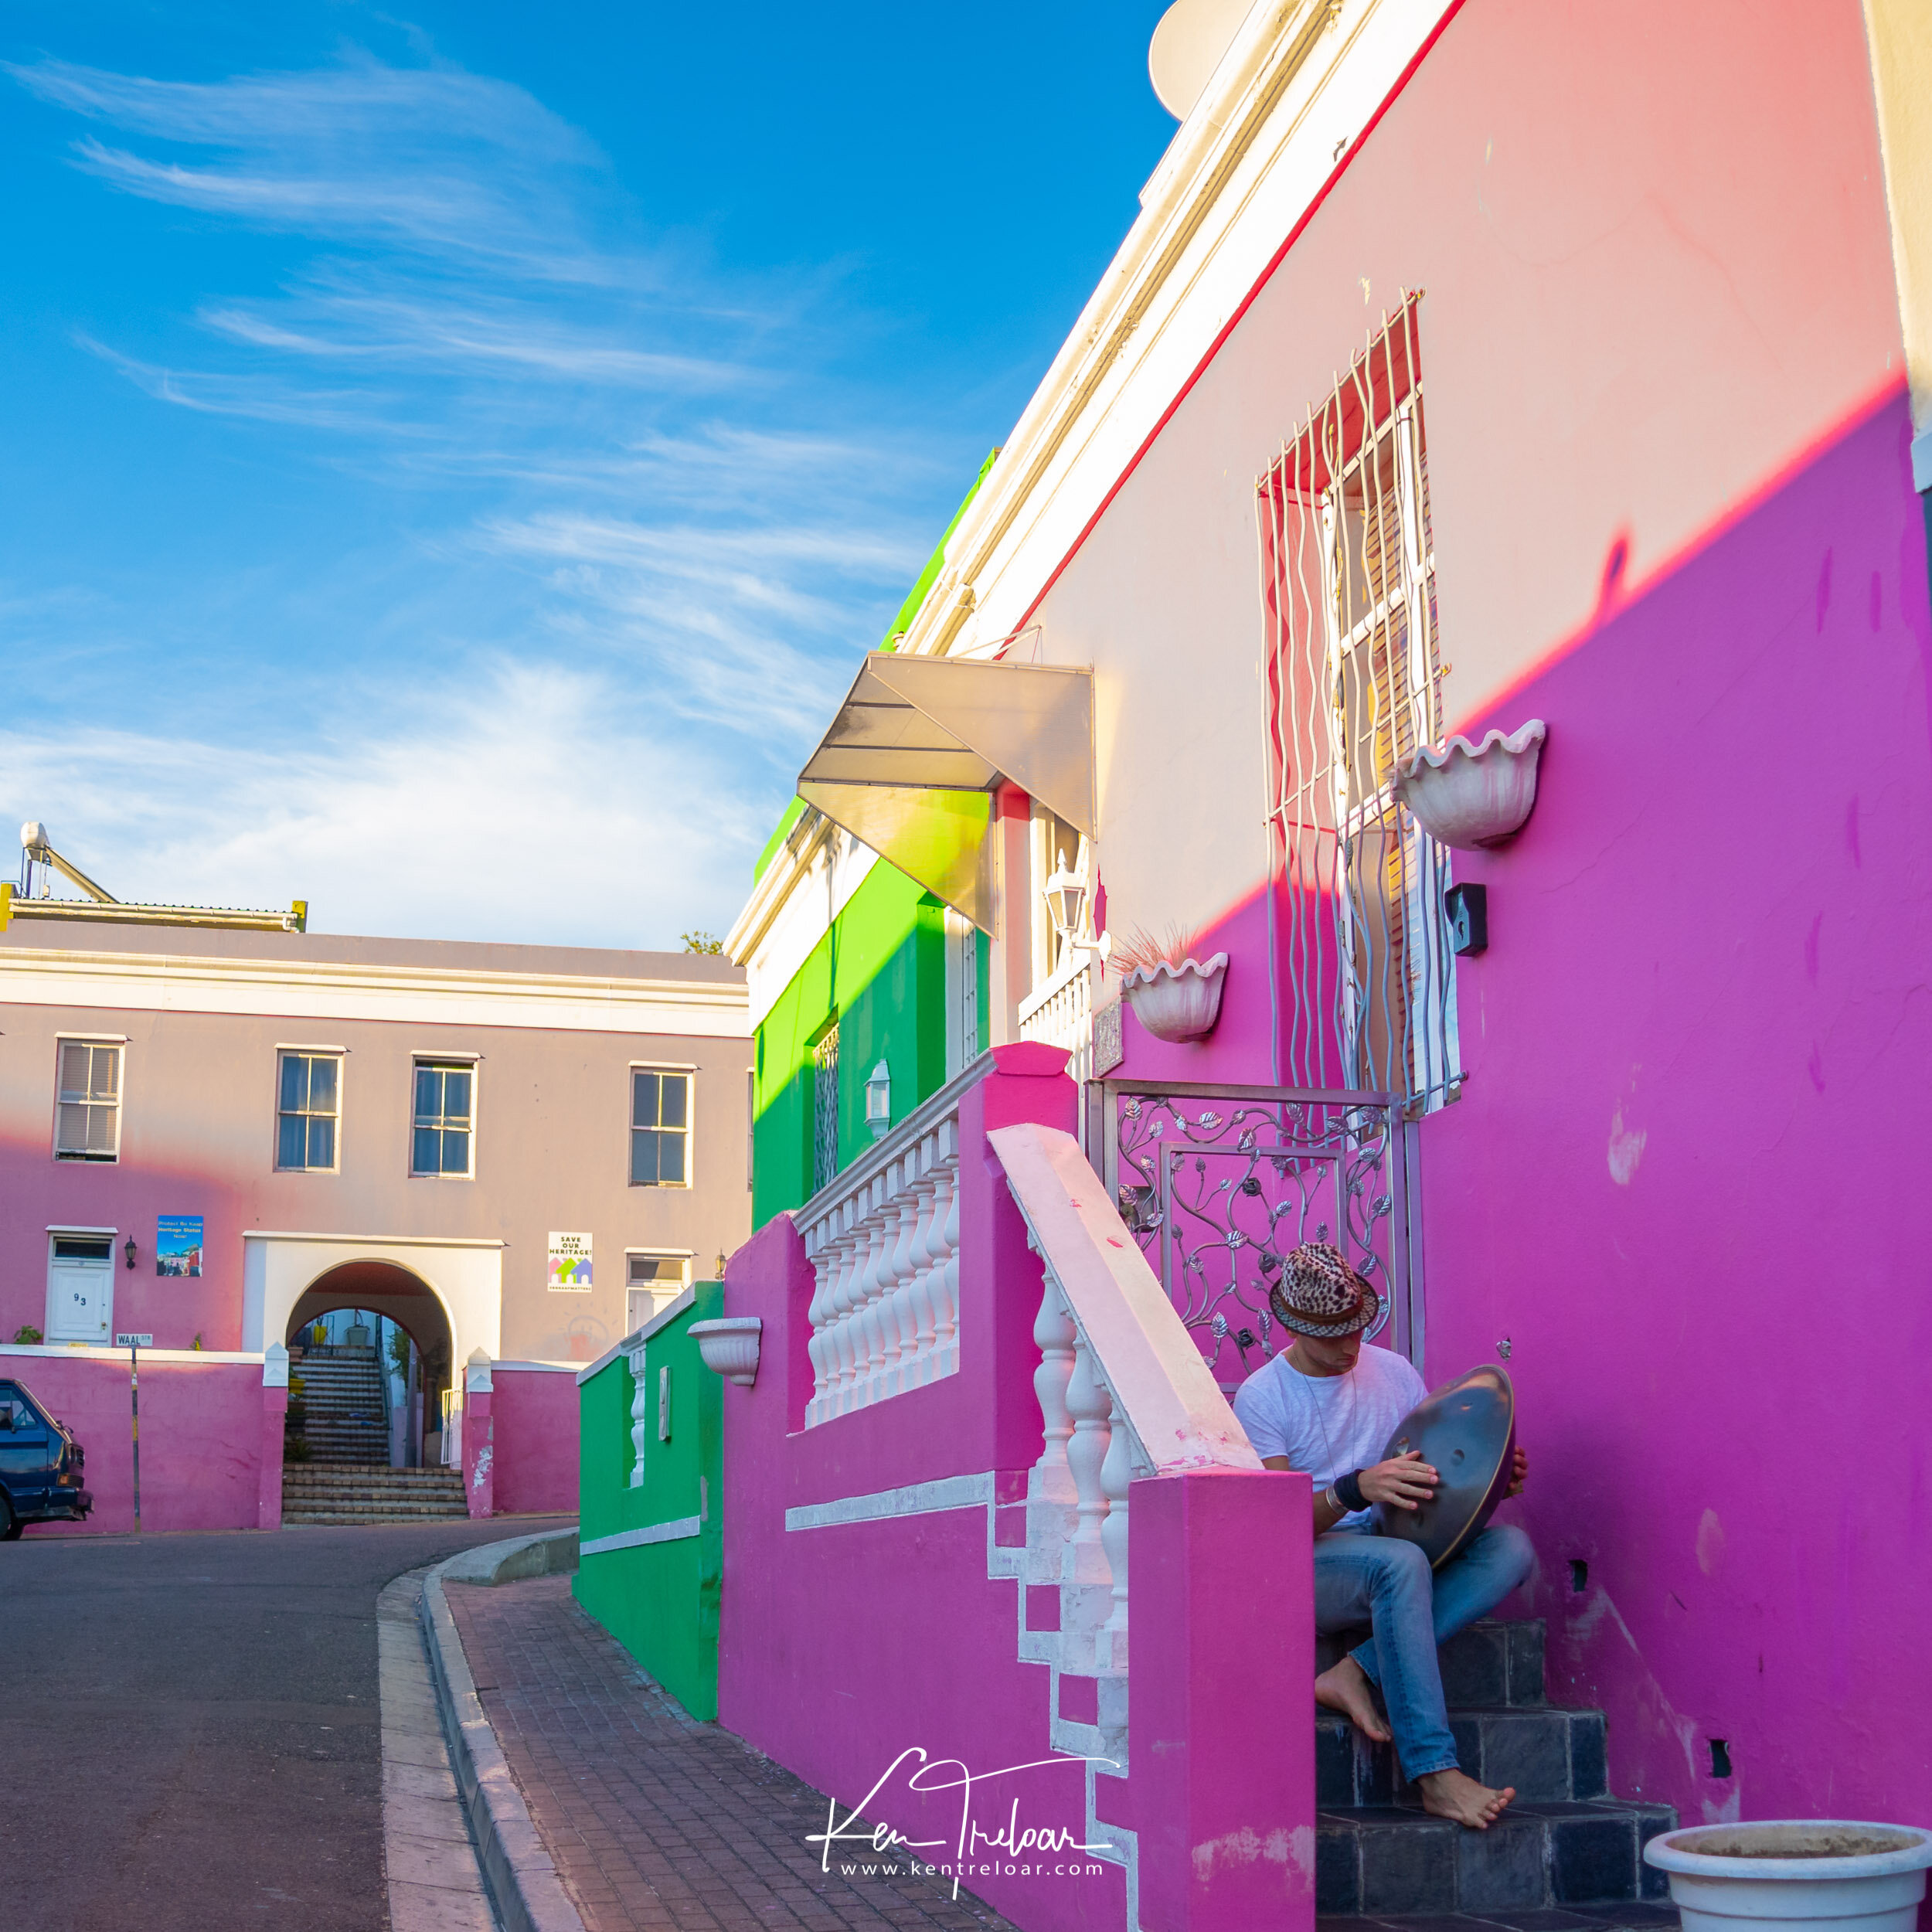 Marco Selvaggio Hang Musical Instrument - Bo-Kaap, Cape Town South Africa - Image by Ken Treloar Photography 2019-4.jpg